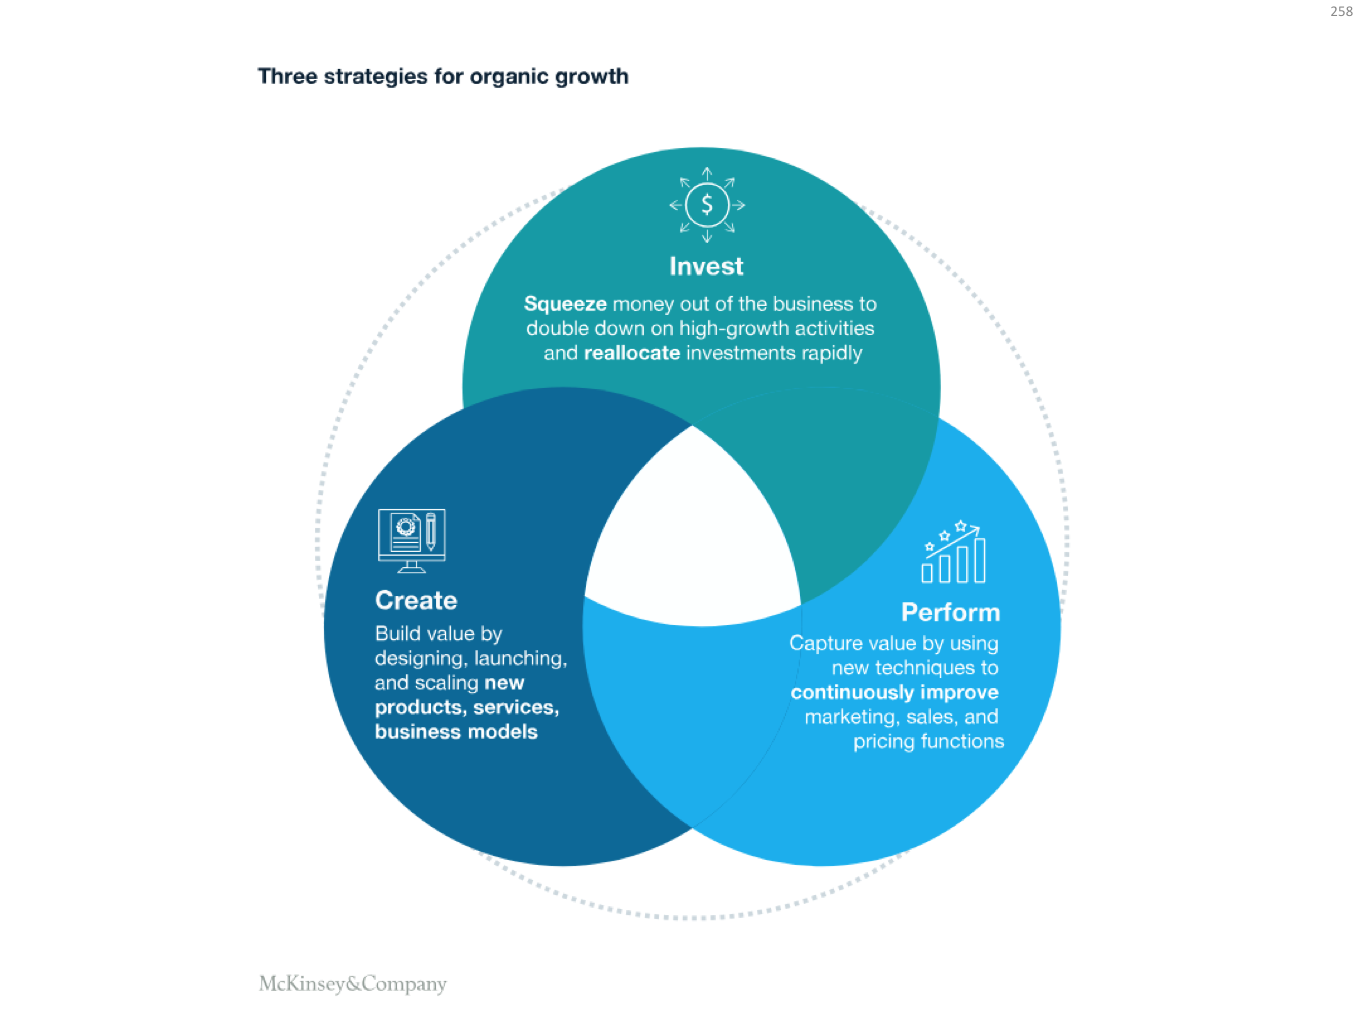 McKinsey - 3 strategies for organic growth.png